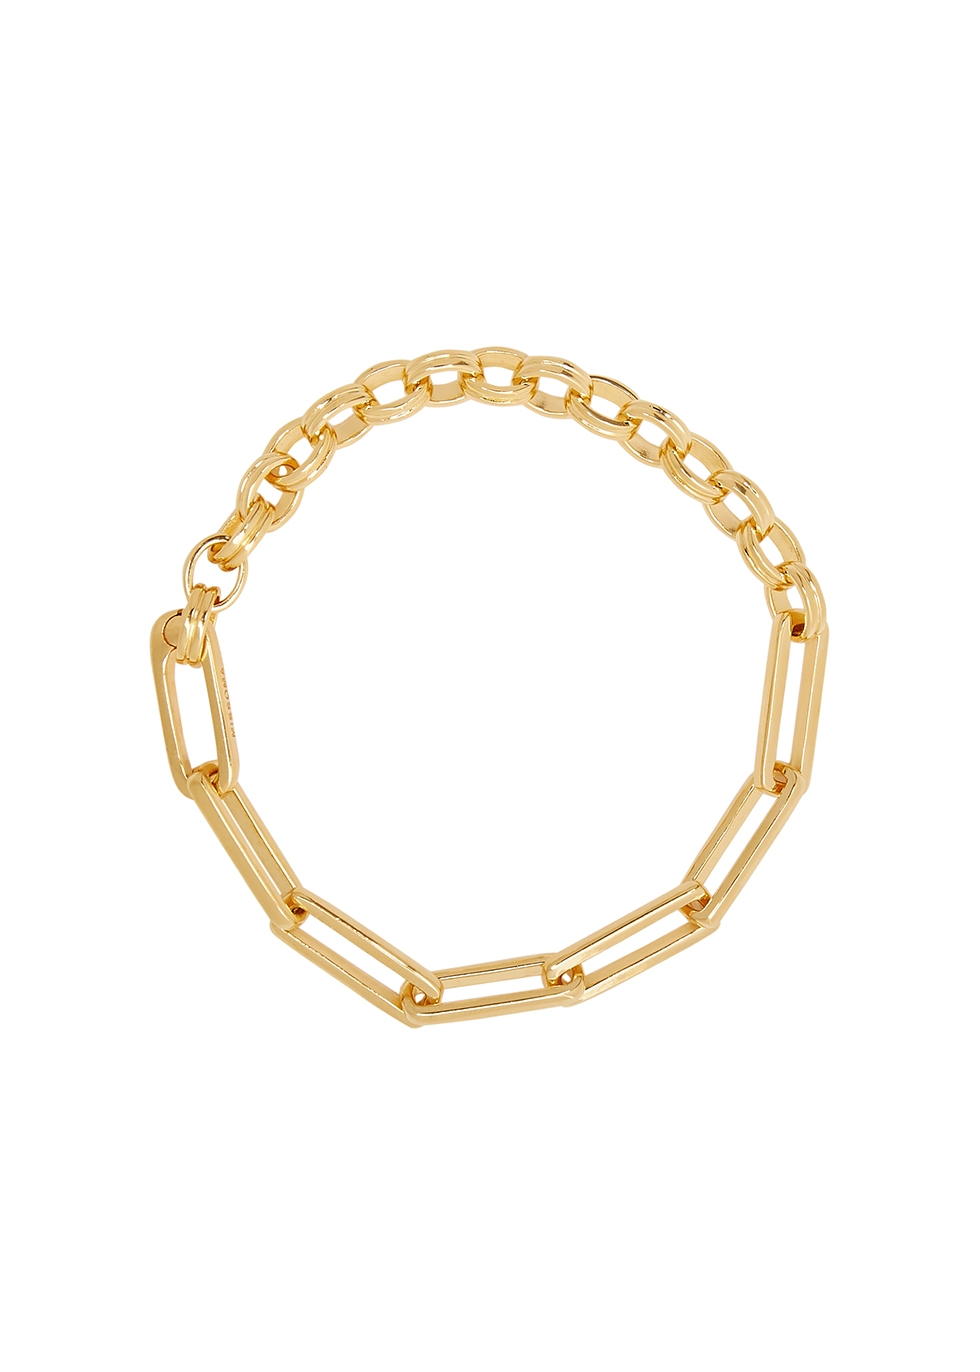 Deconstructed Axiom 18kt gold-plated chain bracelet